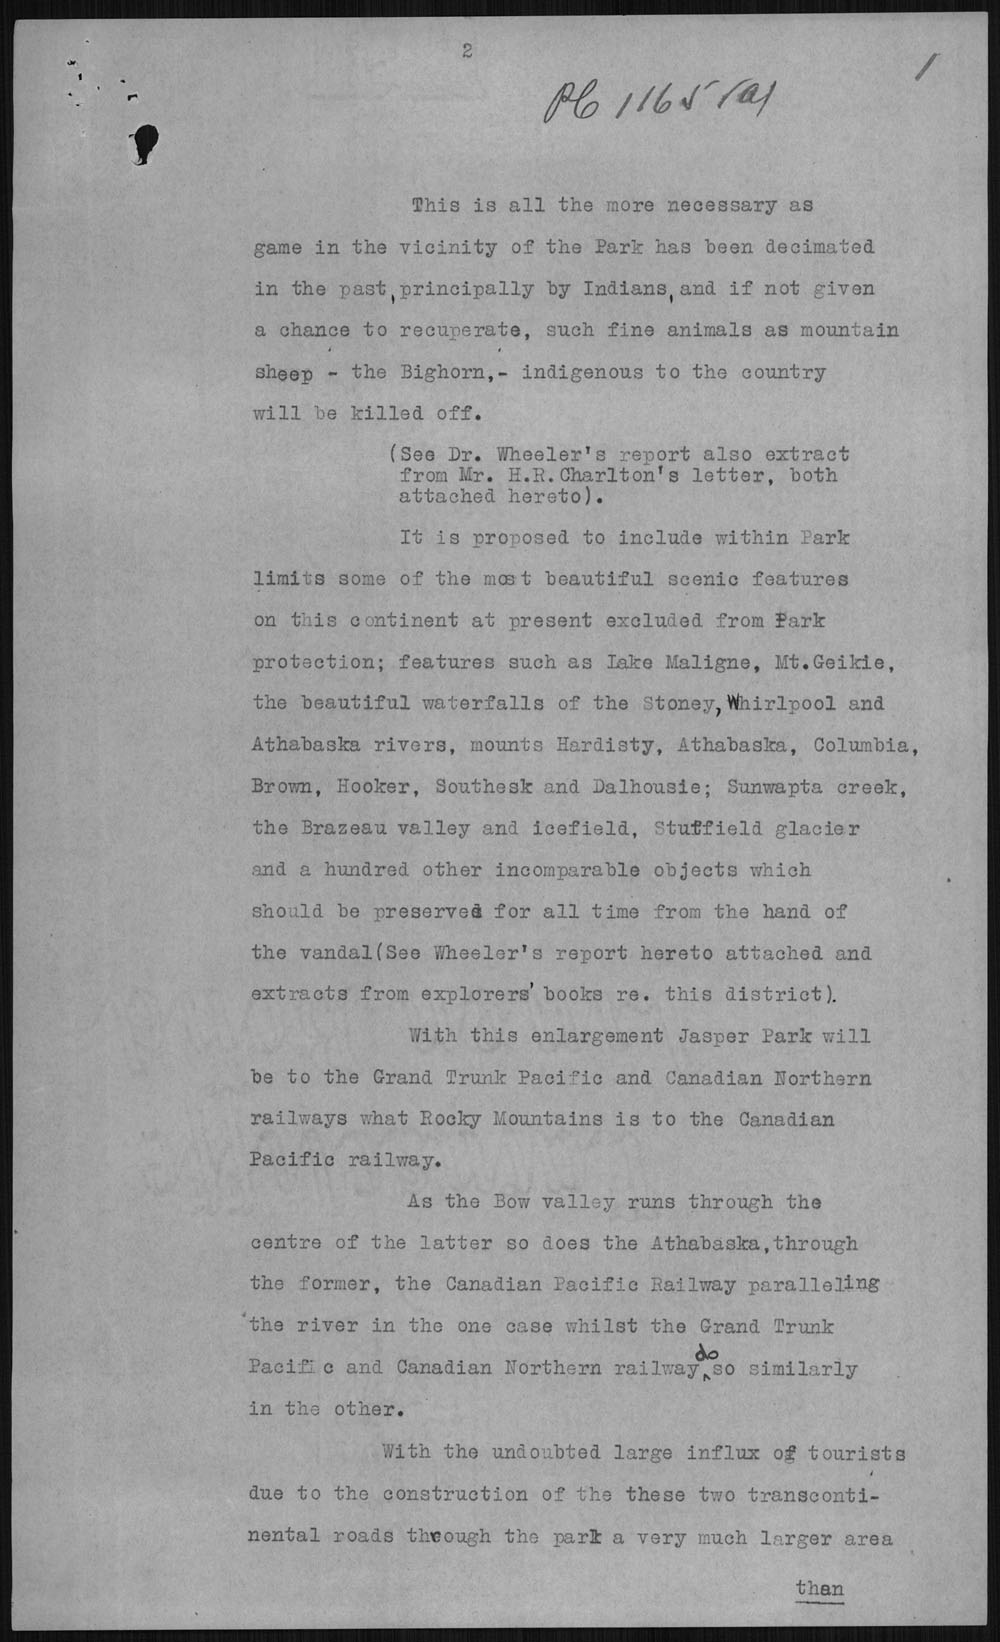 Digitized page of Orders in Council for Image No.: e010877243-v8